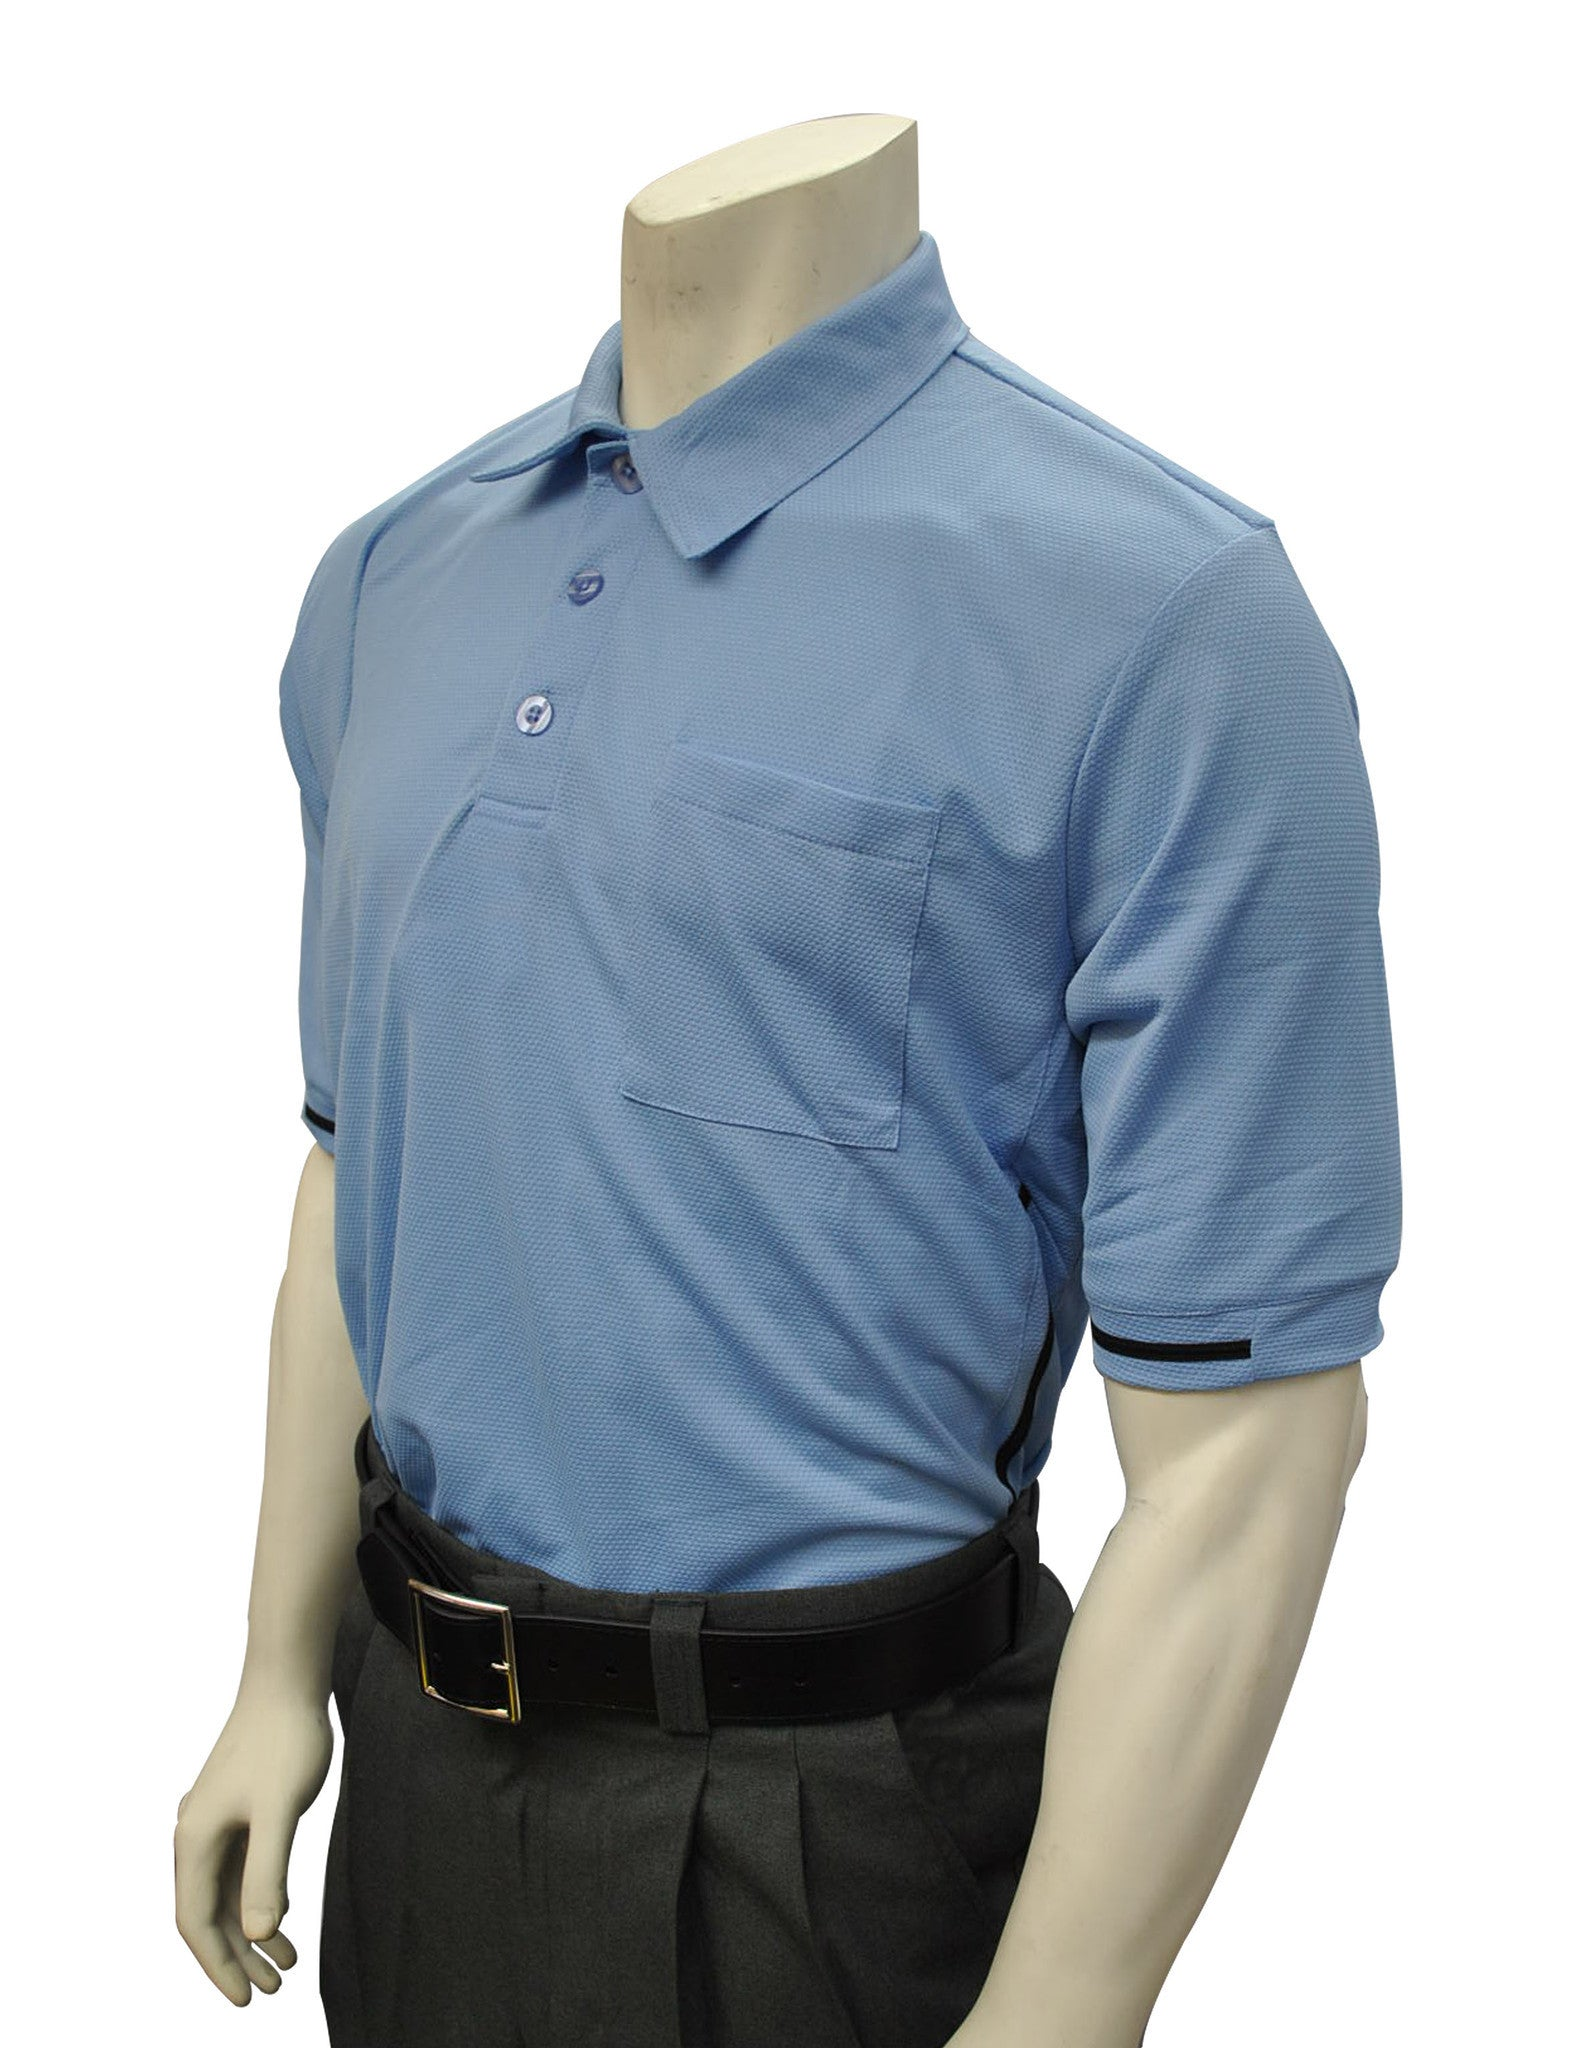 ae4dcfd39137 BBS310-Smitty Major League Style Umpire Shirt - Available in Black and  Carolina Blue